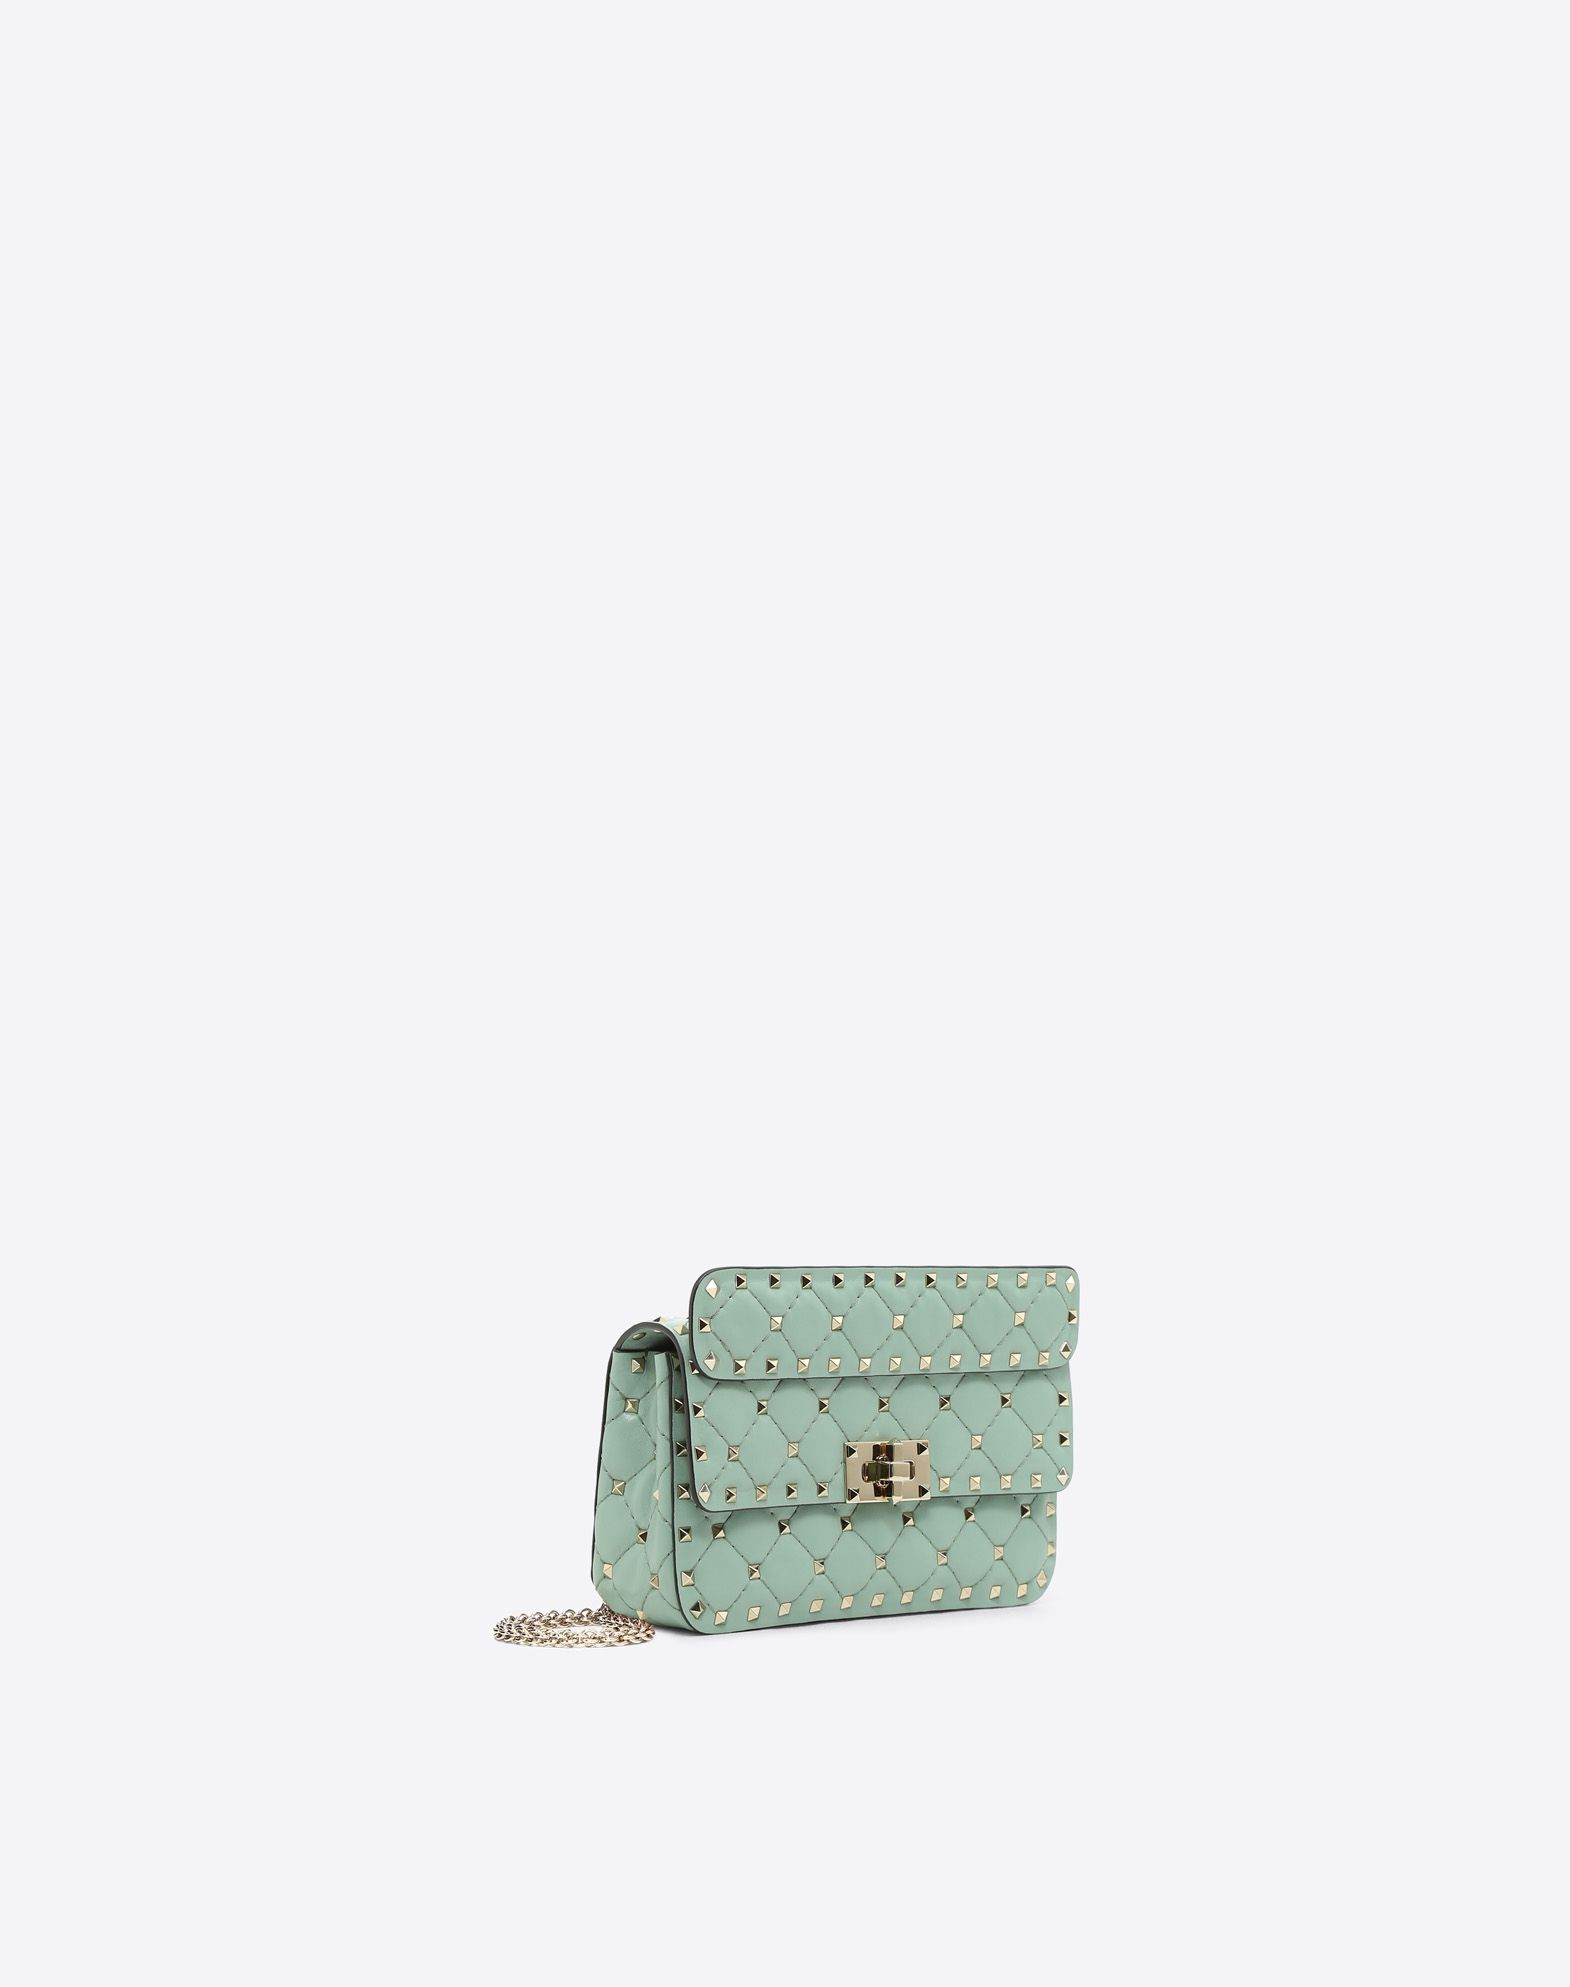 VALENTINO GARAVANI Rockstud Spike Small Chain Bag Shoulder bag D r